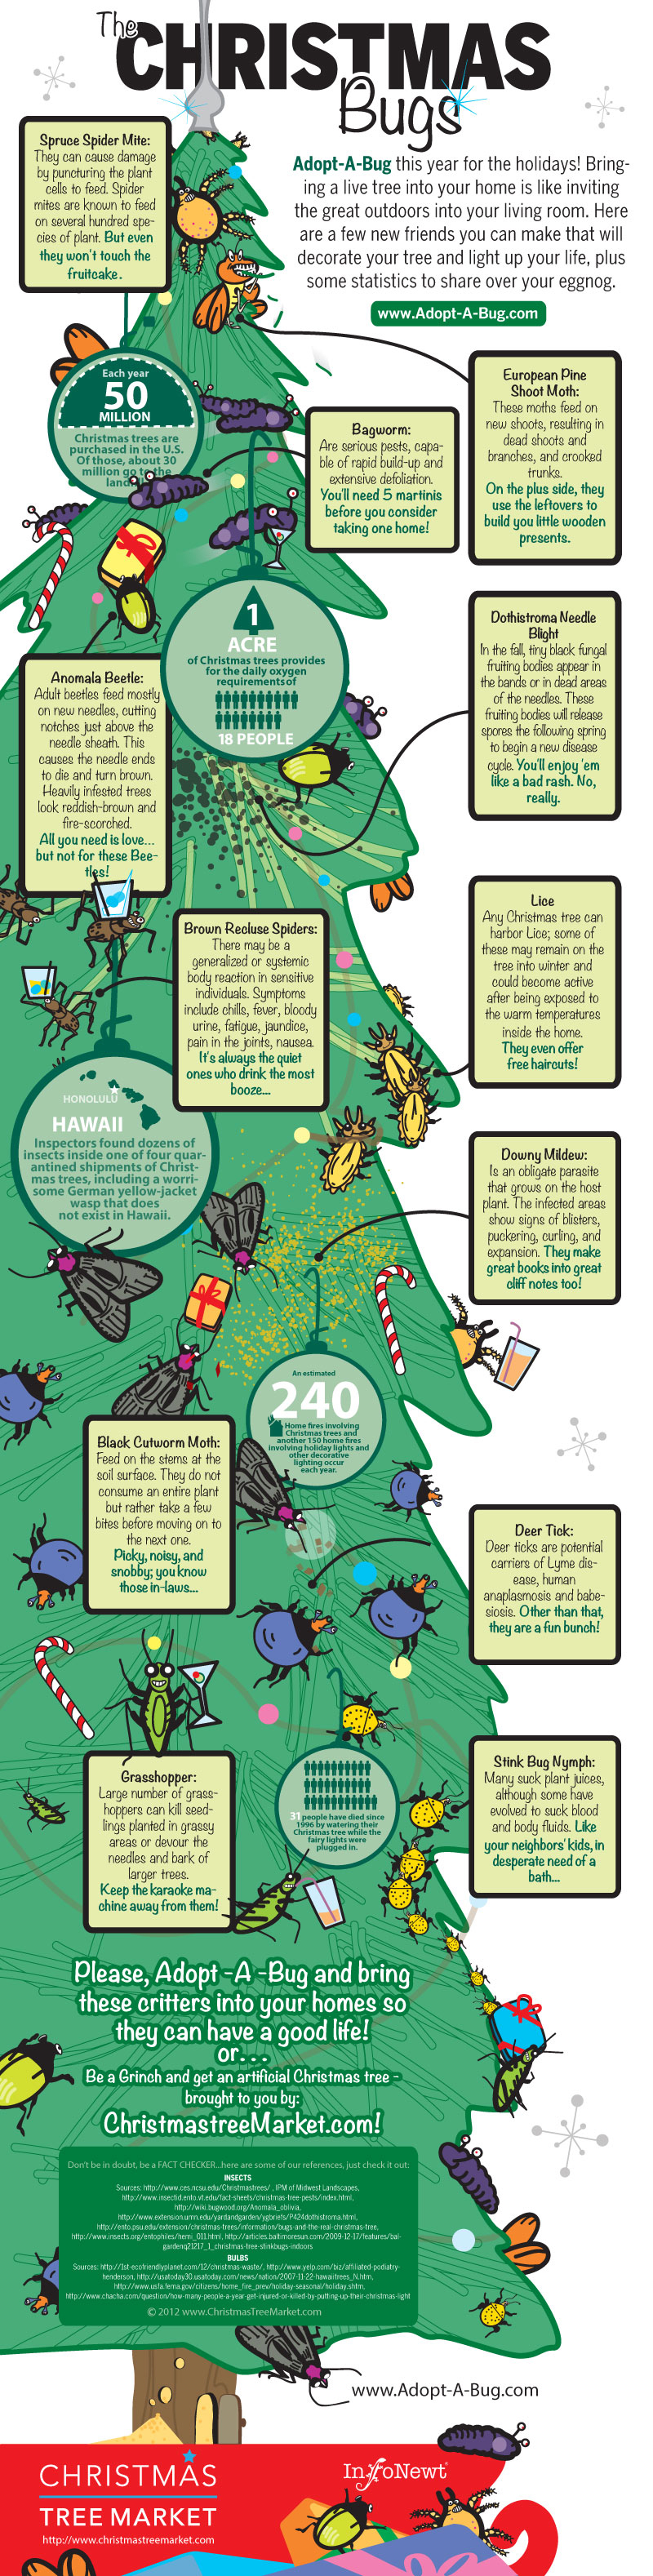 Adopt a Bug for Your Live Christmas Tree Infographic